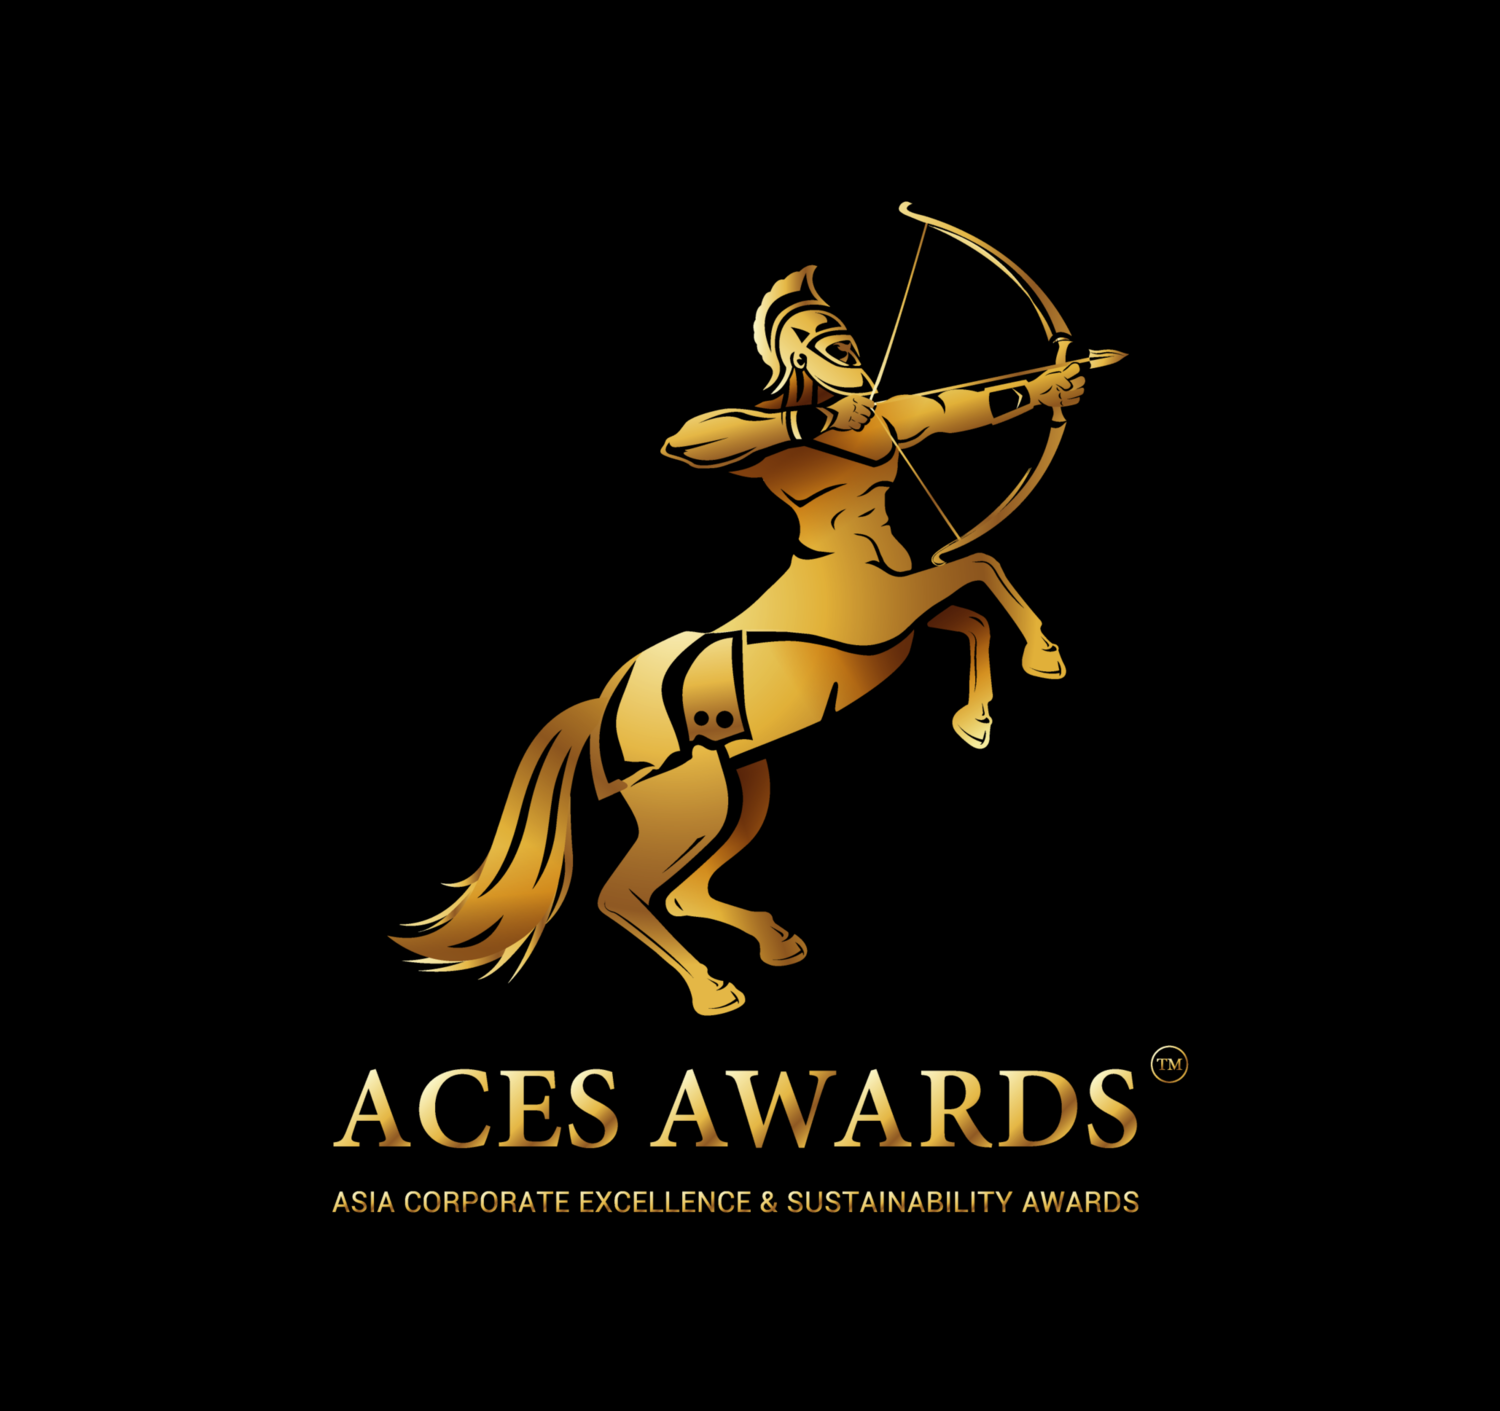 ACES Awards